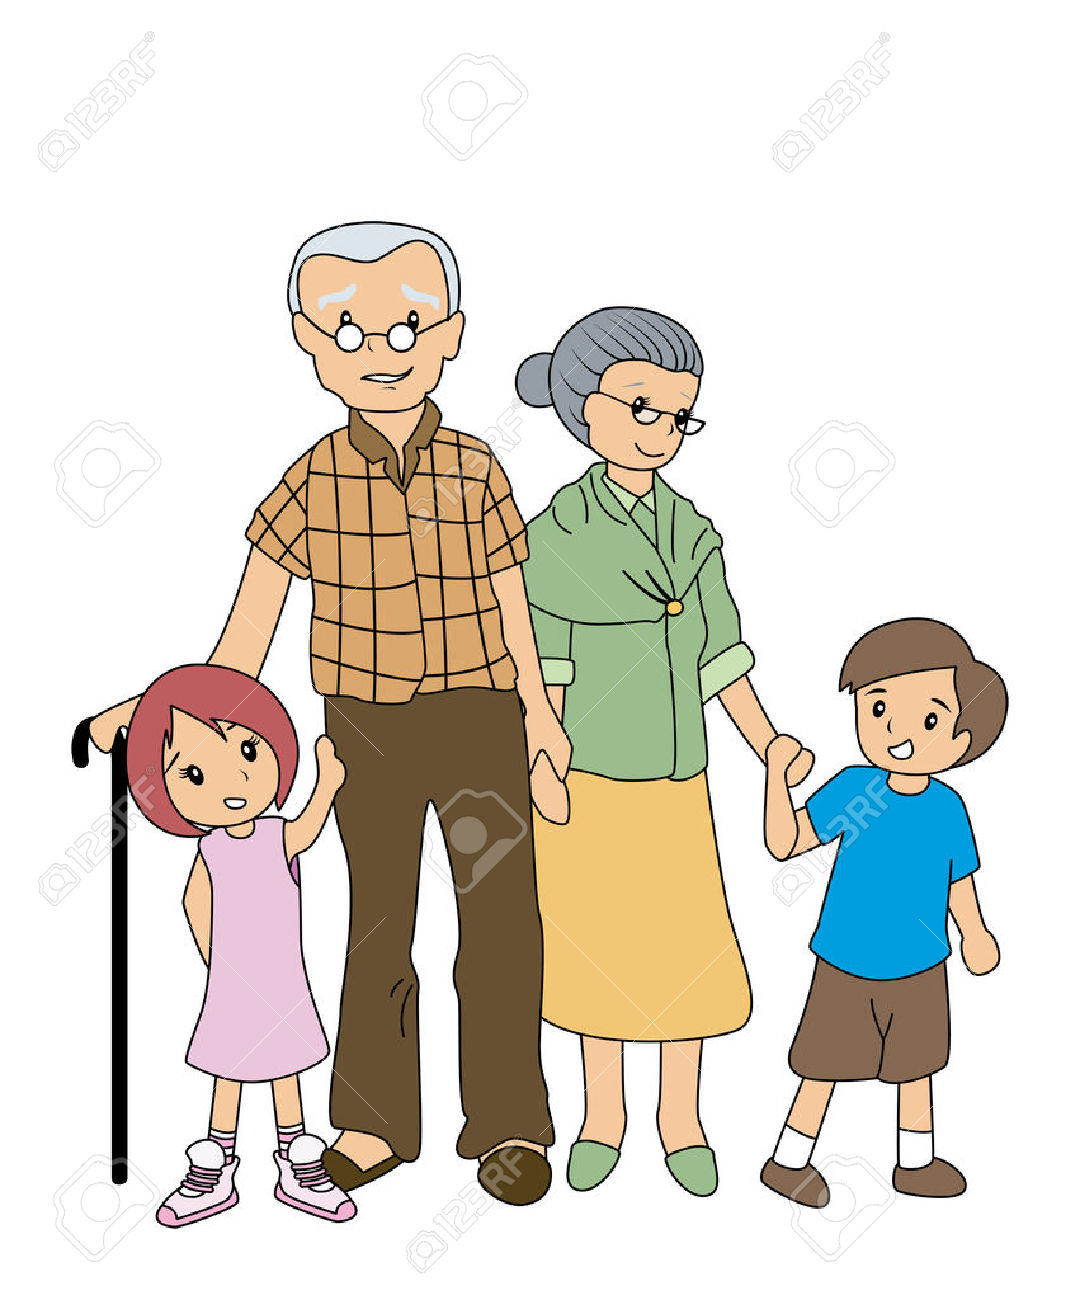 Grandparents clipart. Grandfather and grandmother station